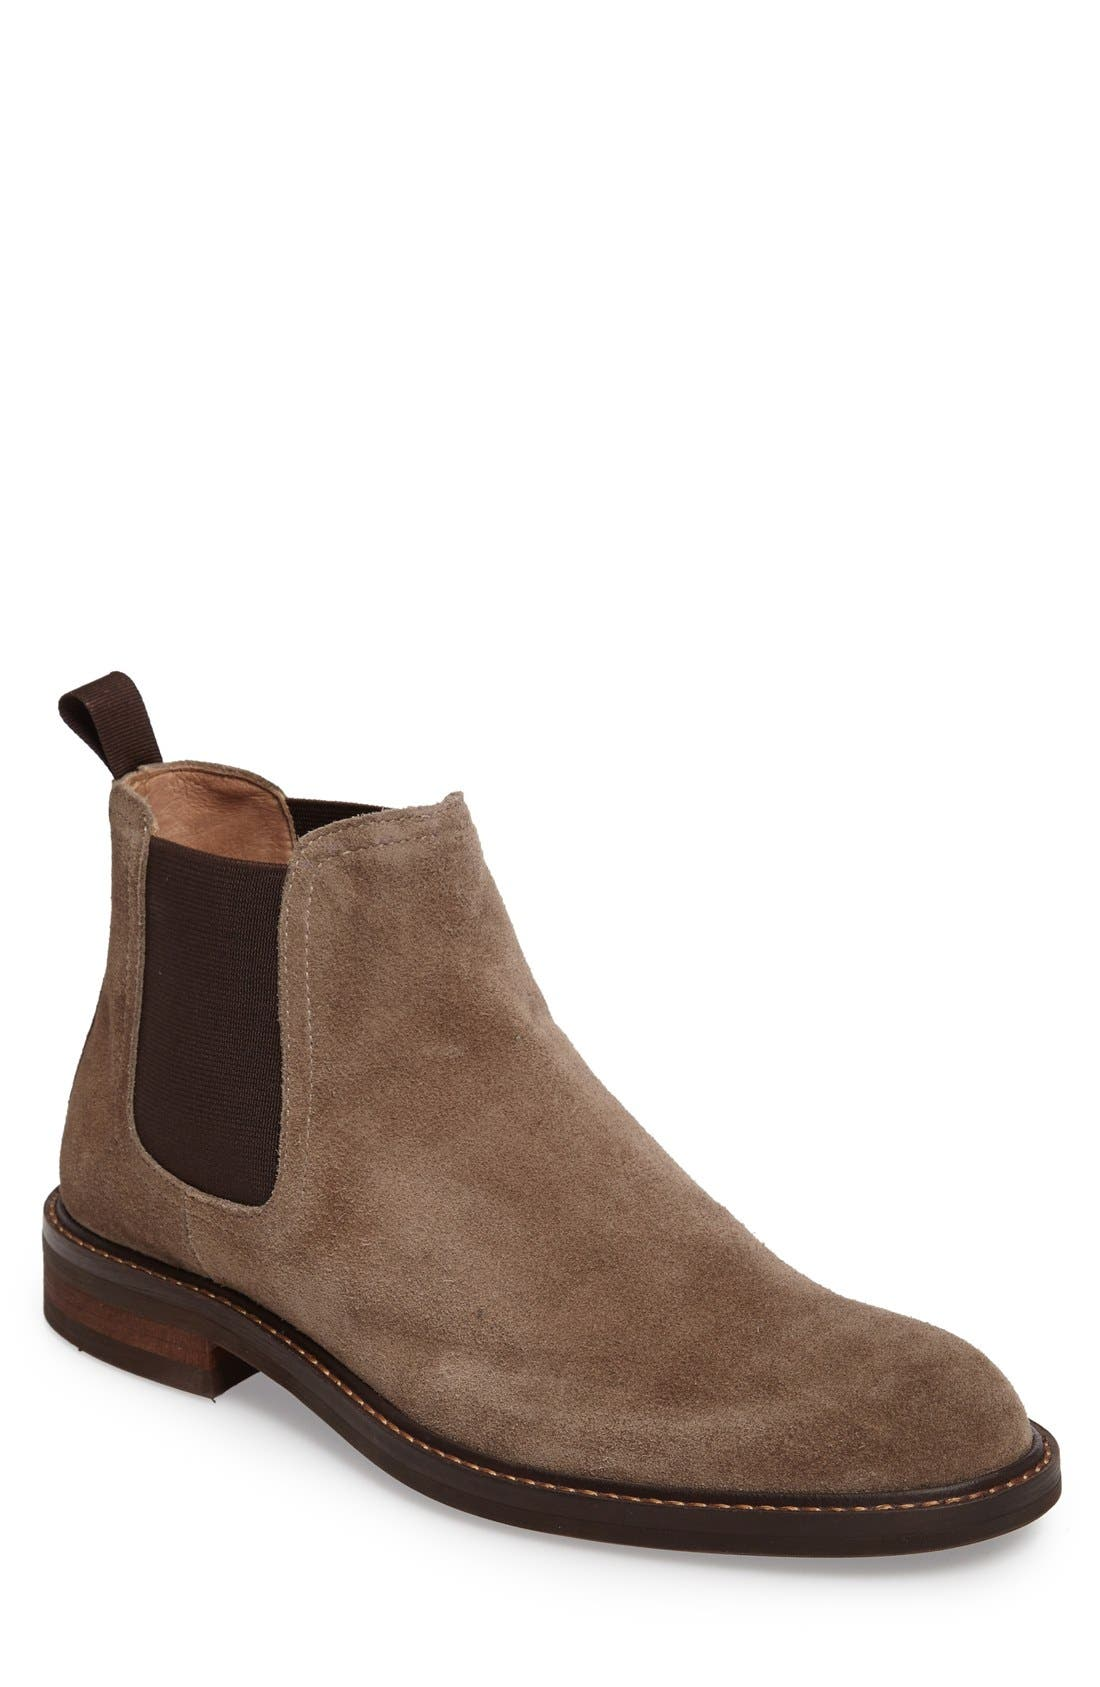 Main Image - 1901 Horton Chelsea Boot (Men)